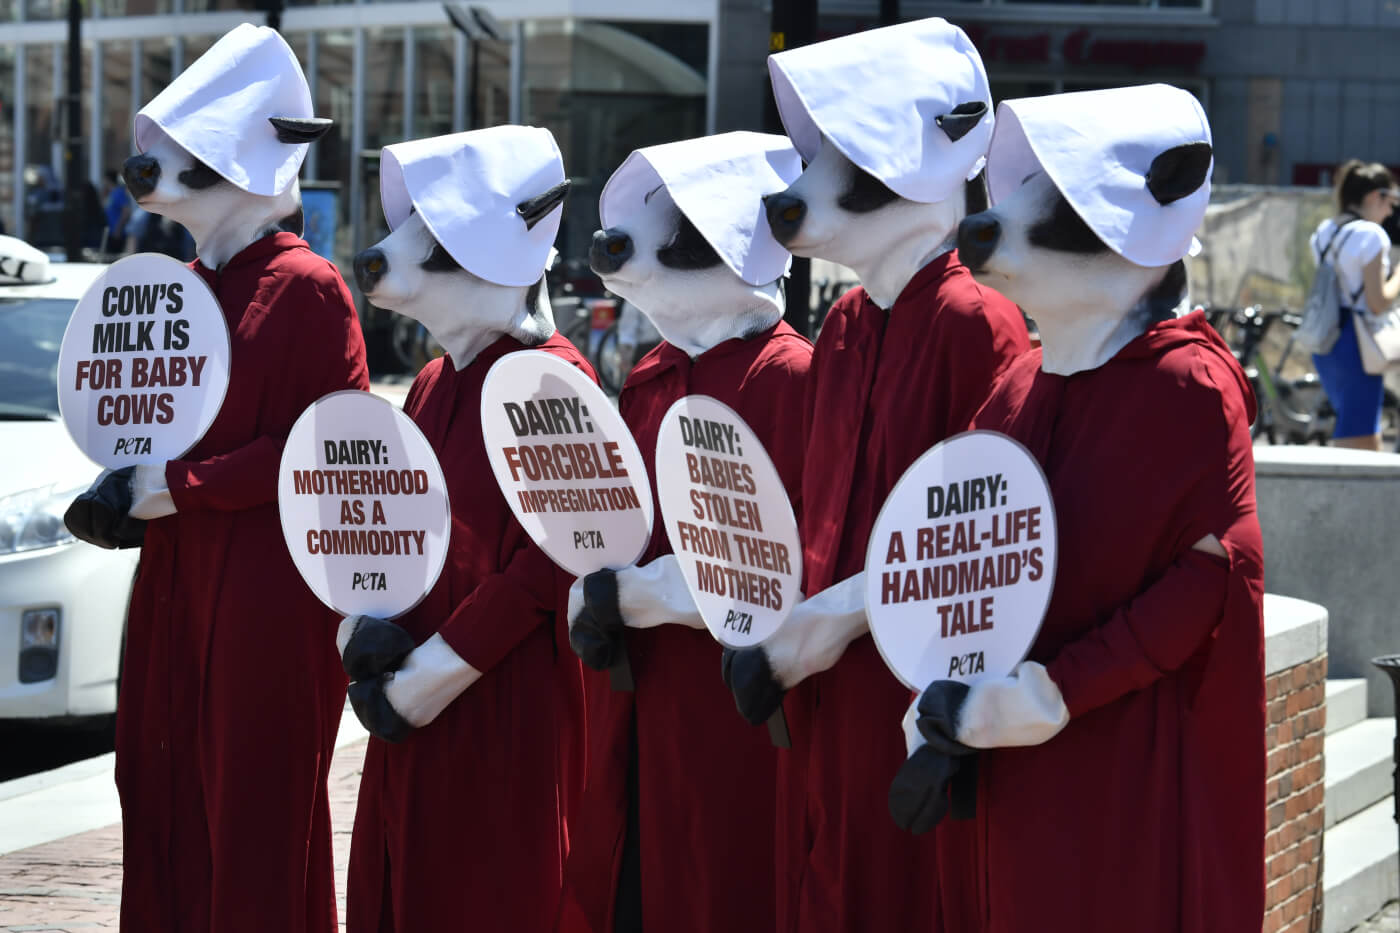 Peta Exposes Parallels Between The Handmaids Tale And Dairy